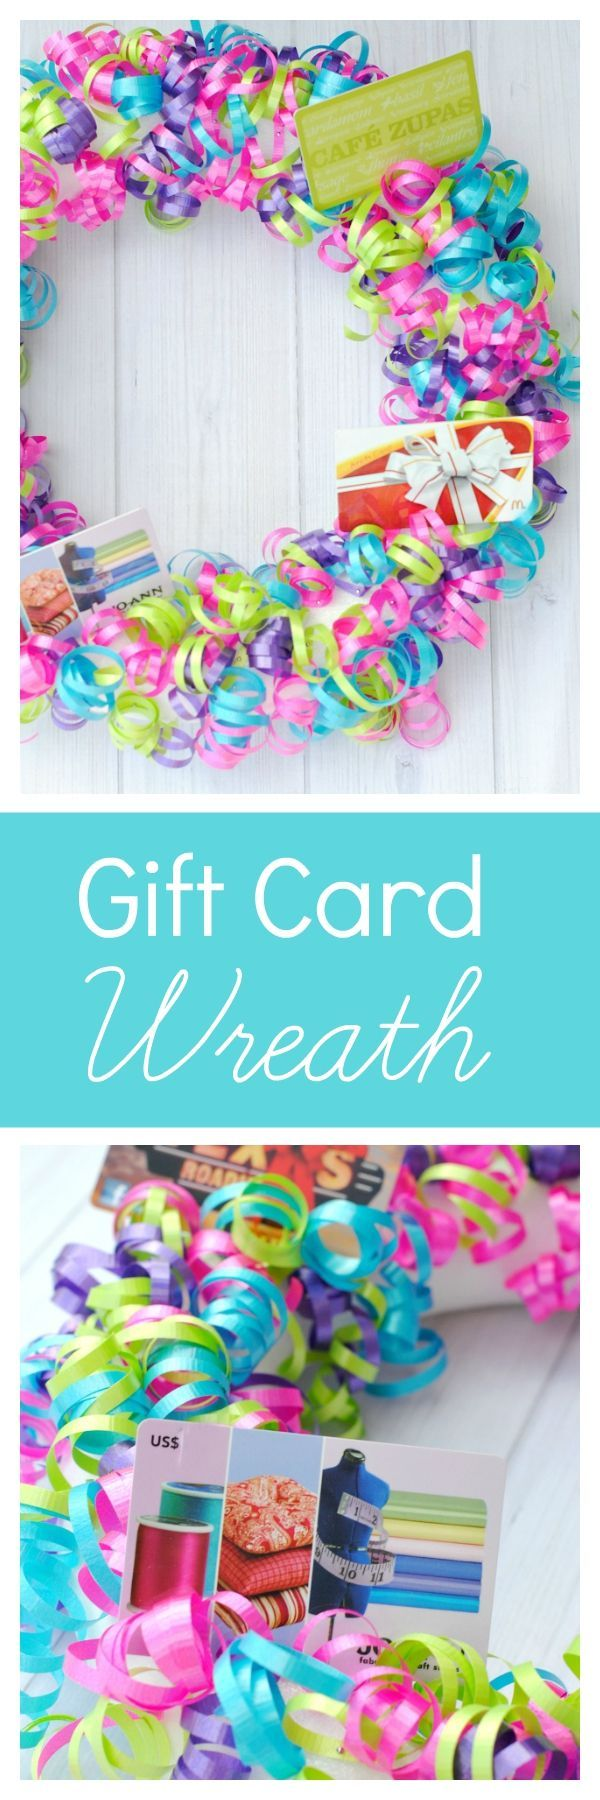 Gift card wreath fun gift idea wreaths gift and basket ideas cute gift idea make a festive wreath and fill it with gift cards xflitez Images